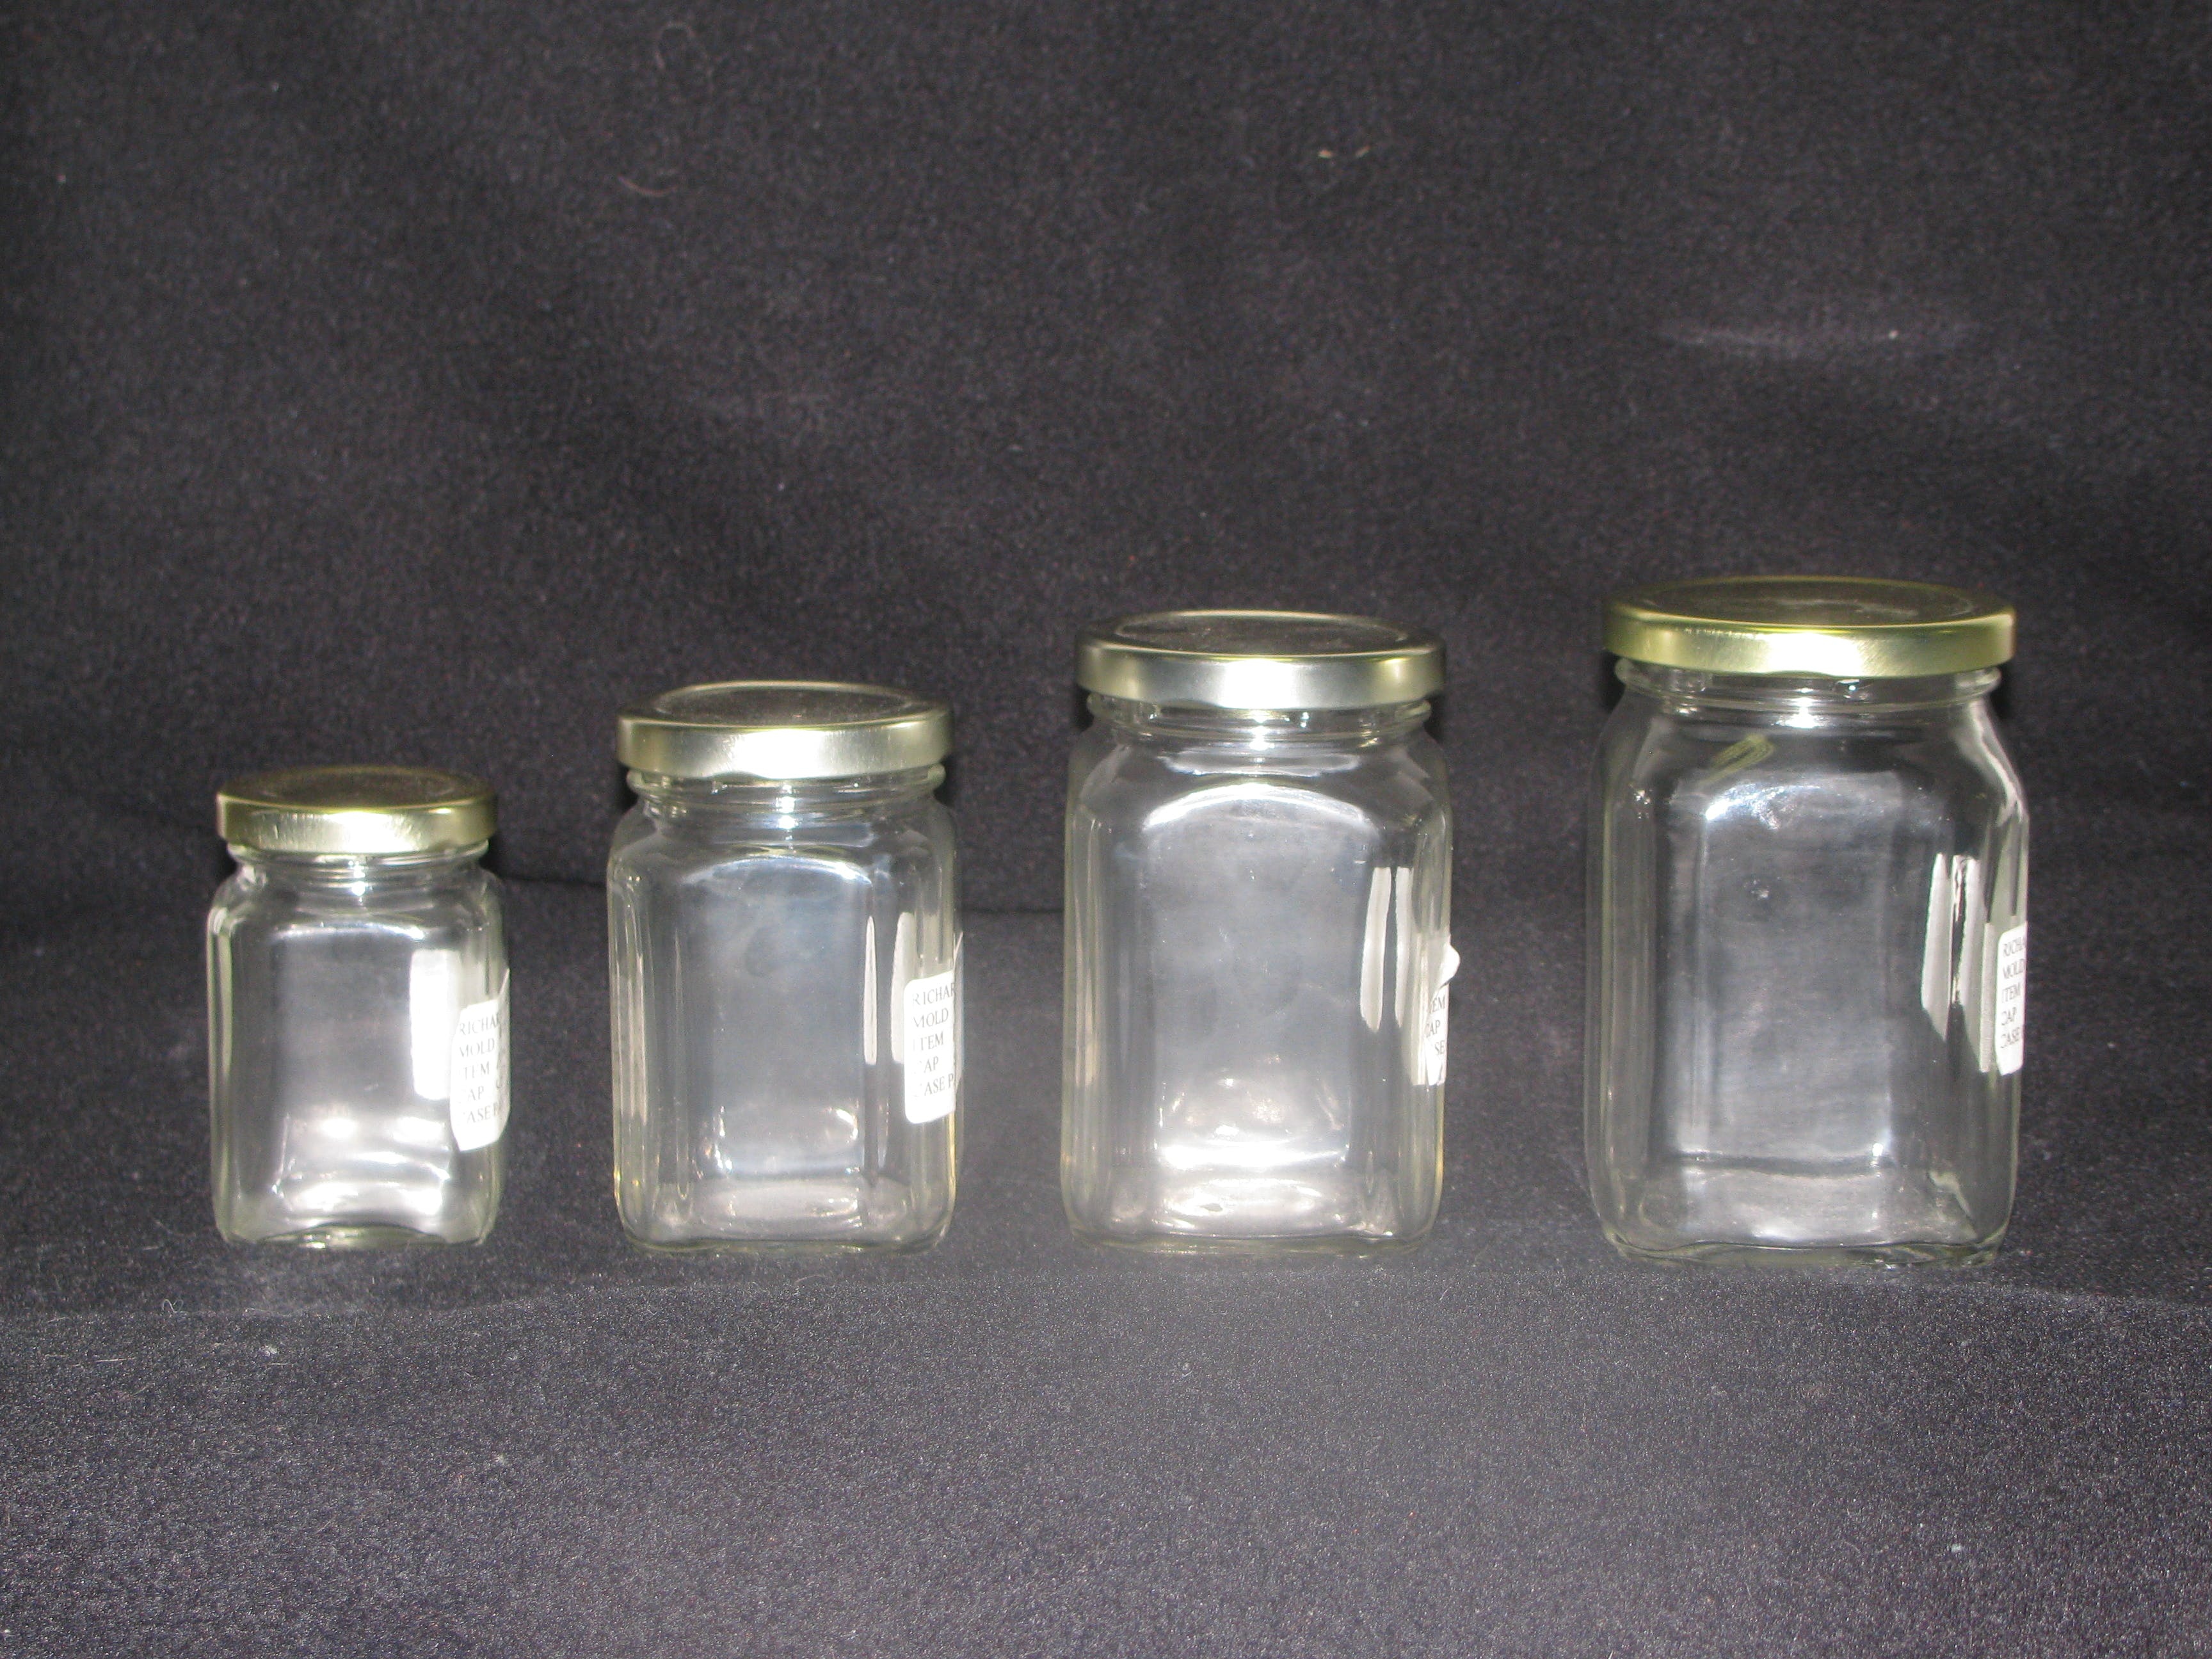 Victorian Jars Glass Jar sold by Richards Packaging, Inc